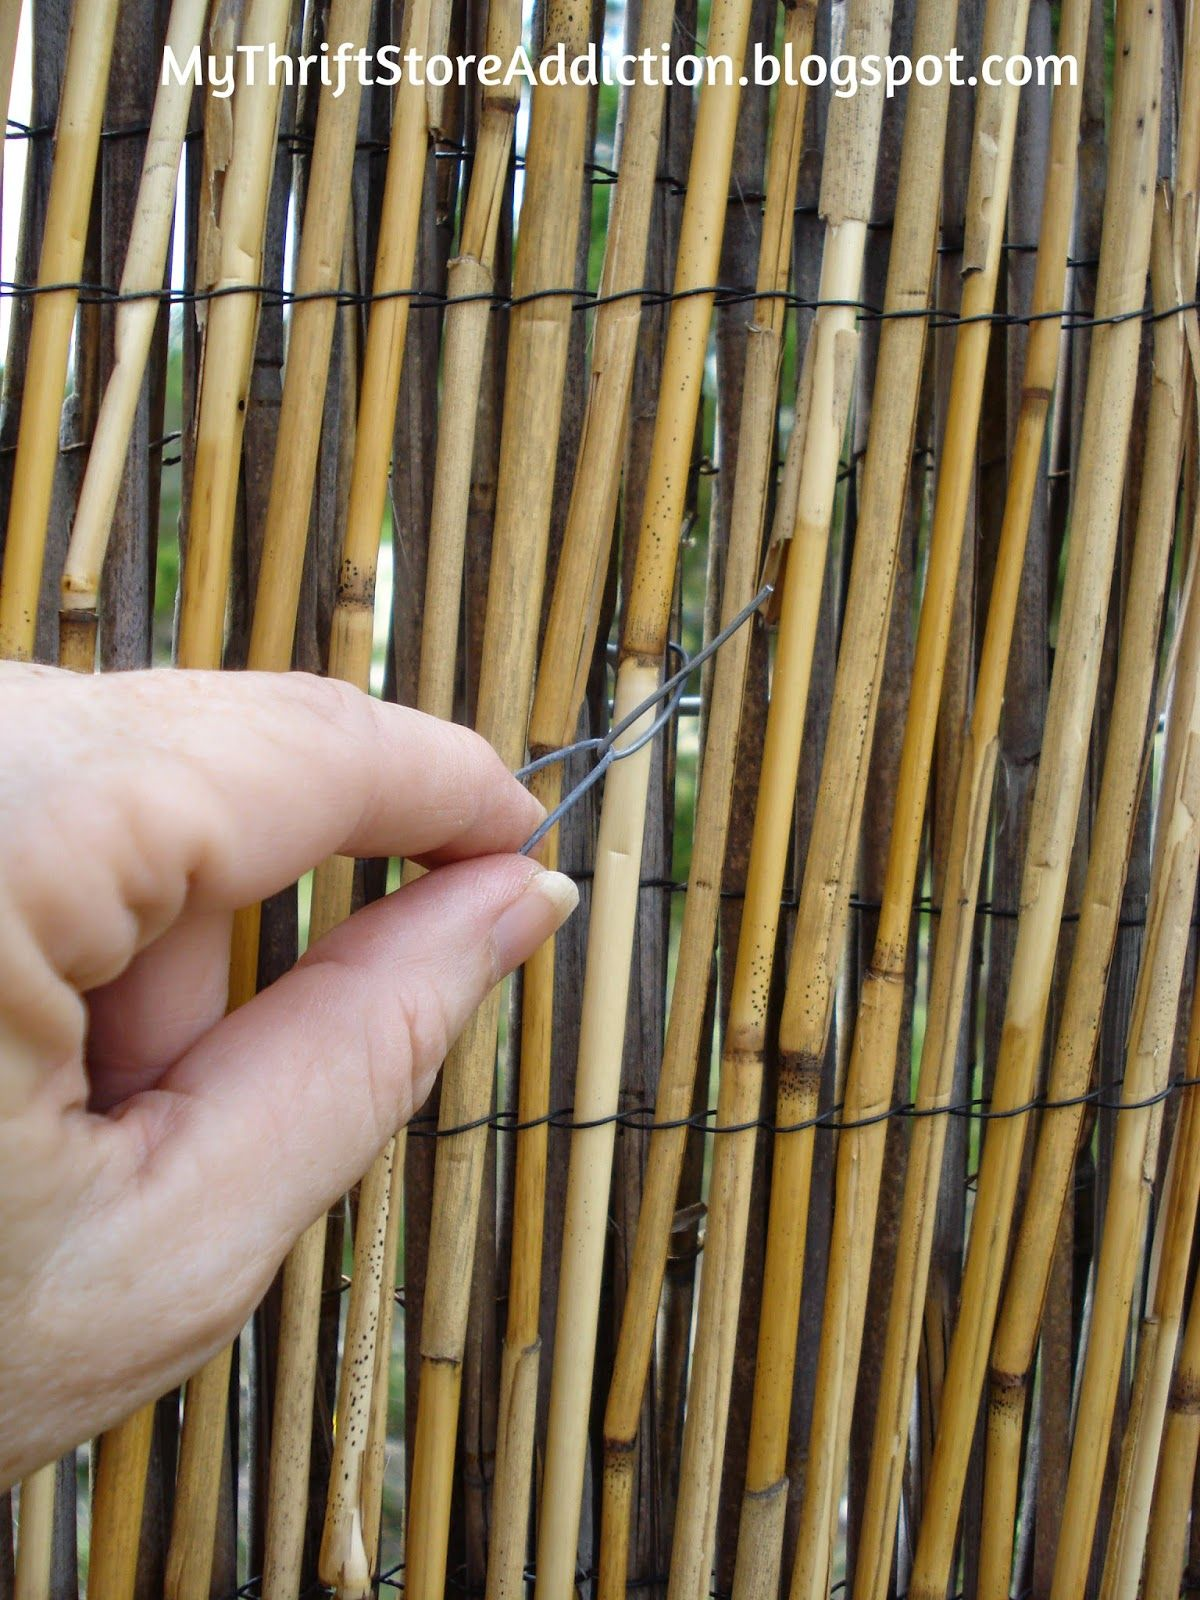 Diy Reed Fence Upgrade Reed Fencing Bamboo Fence Fence